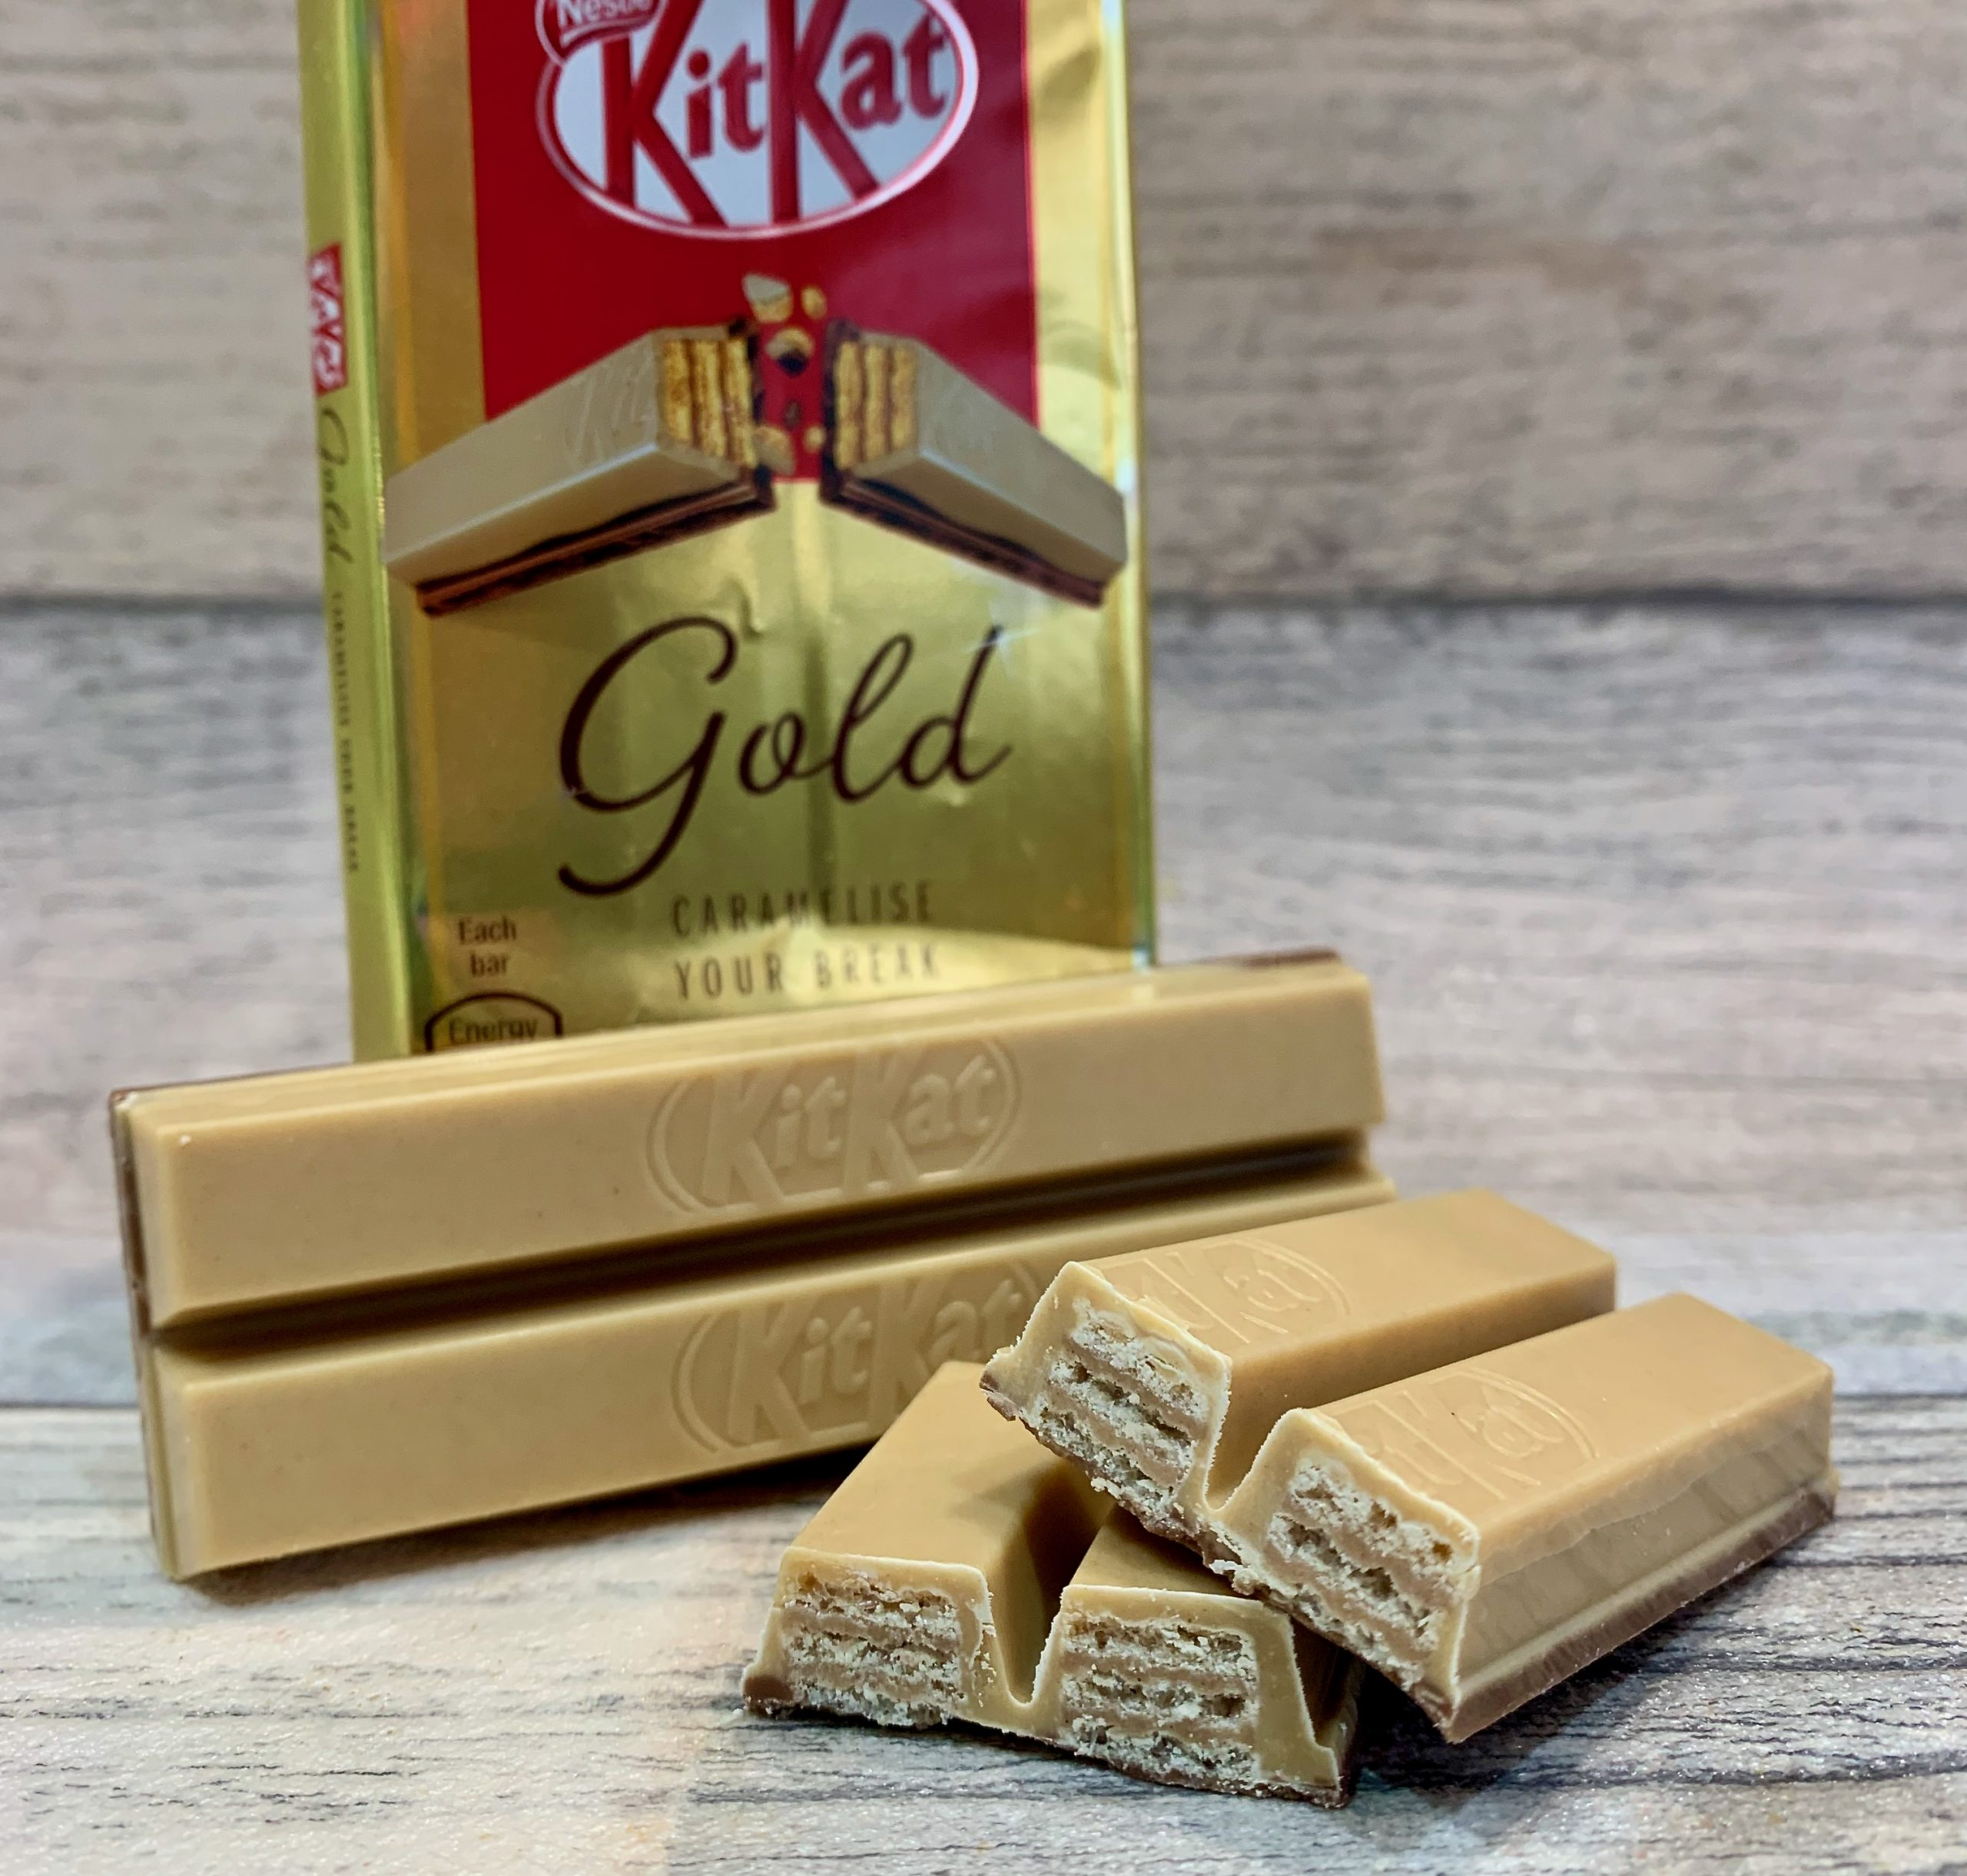 KitKat Gold Review Caramelise Your Break